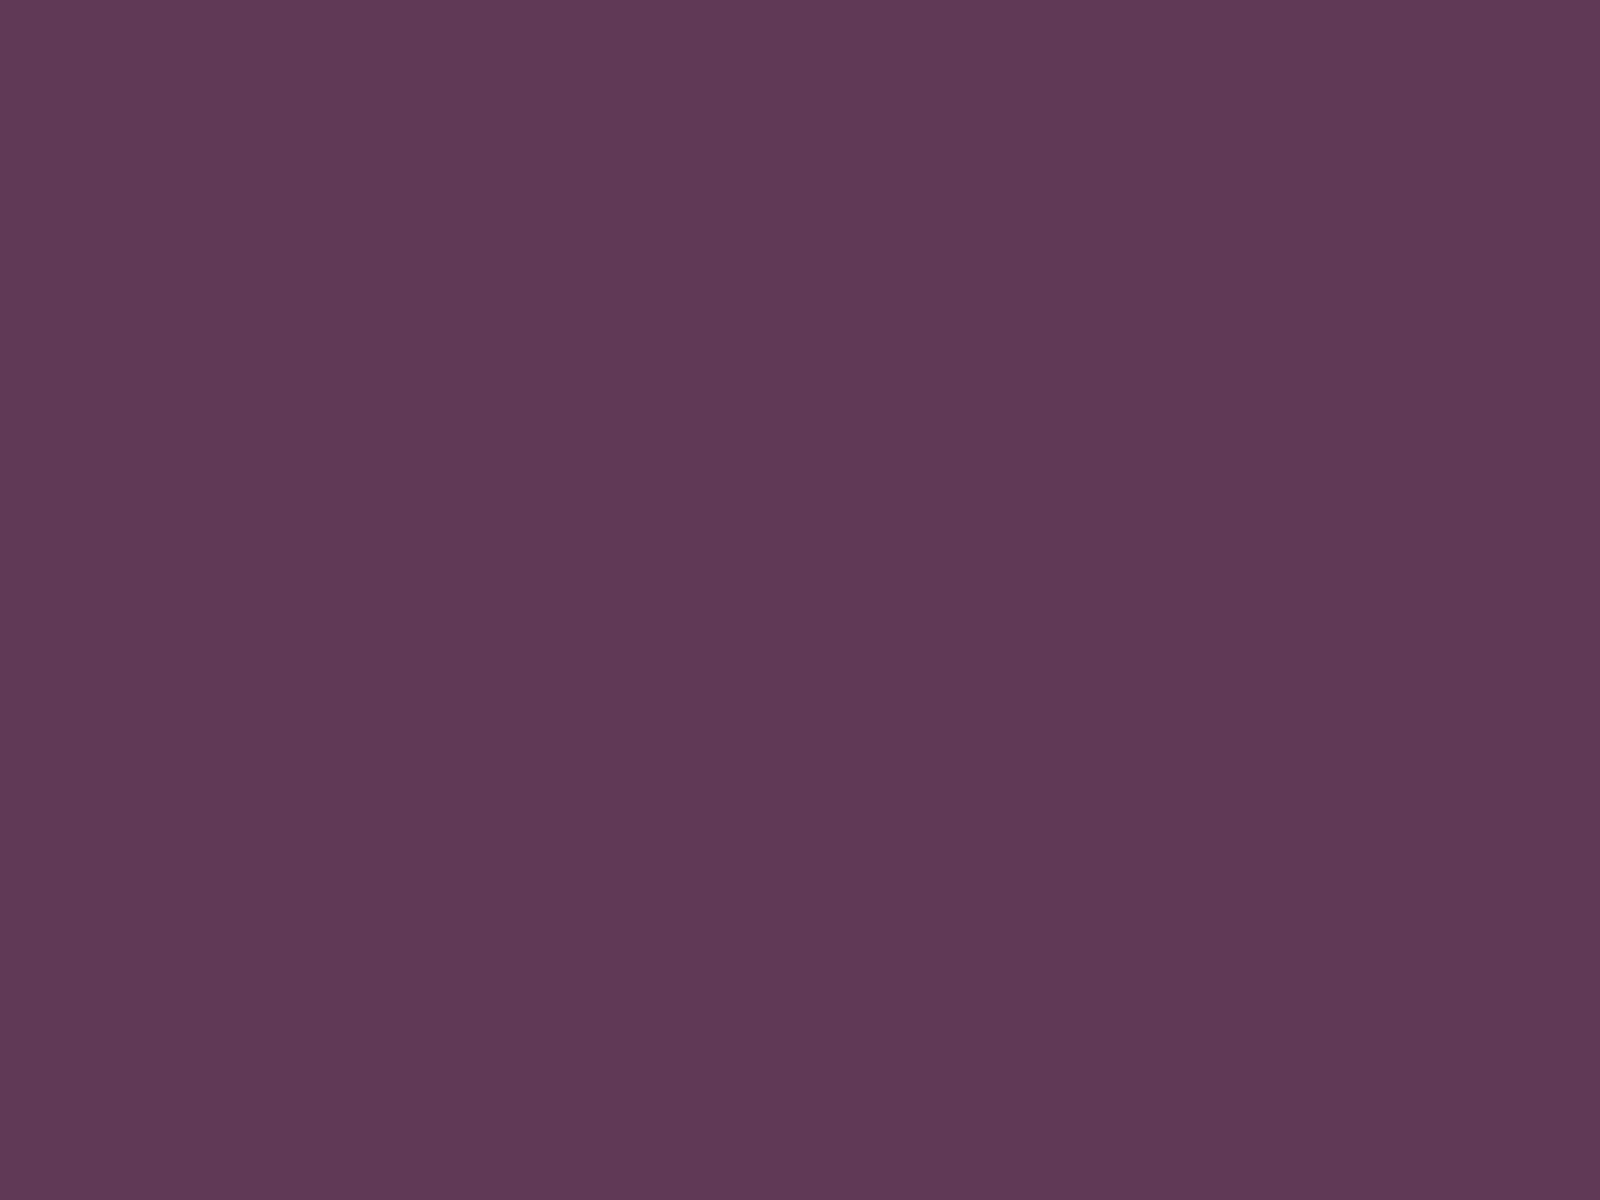 1600x1200 Dark Byzantium Solid Color Background